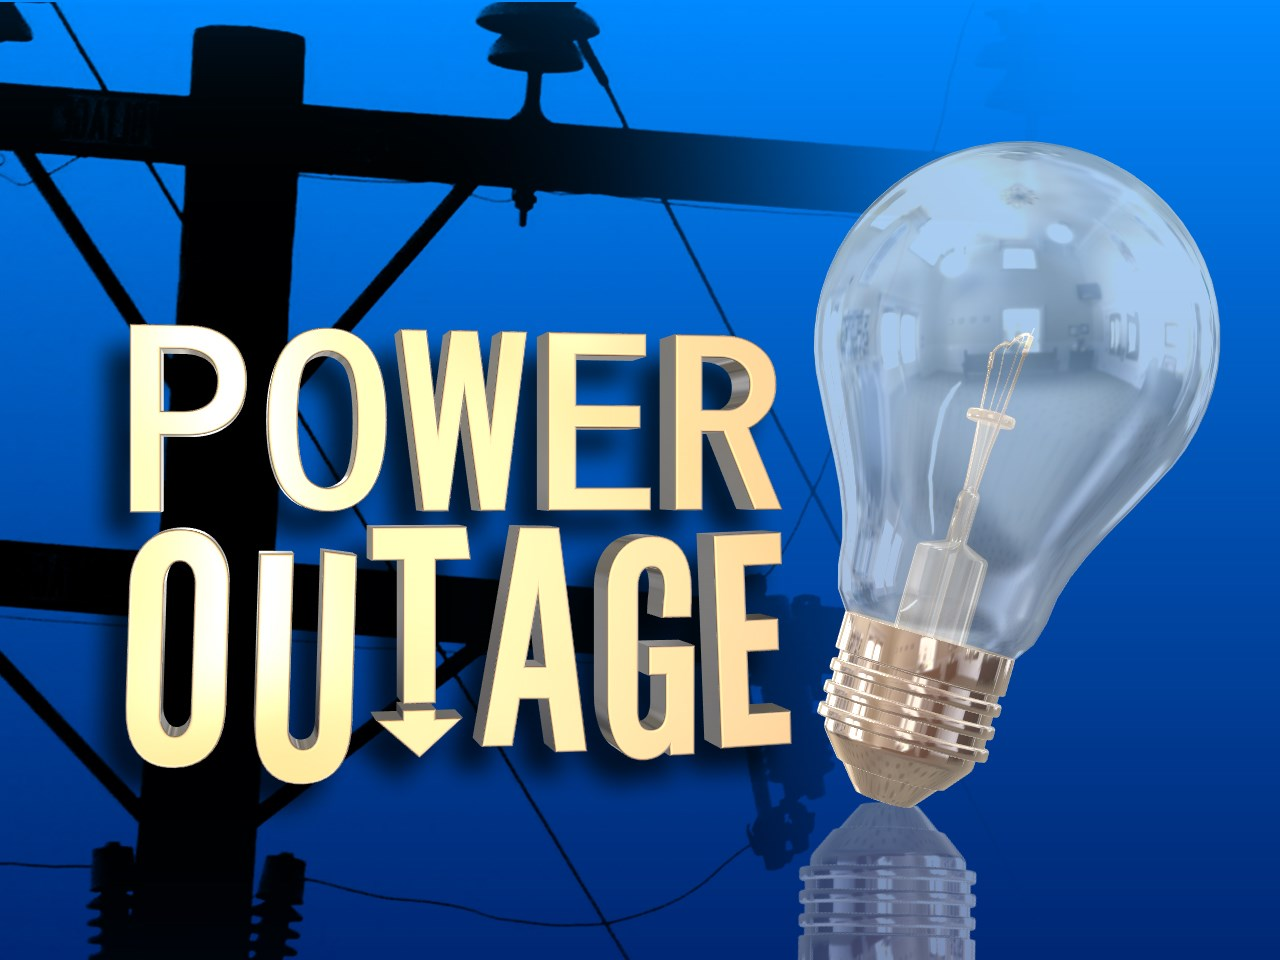 power outage_1498131801804.jpg